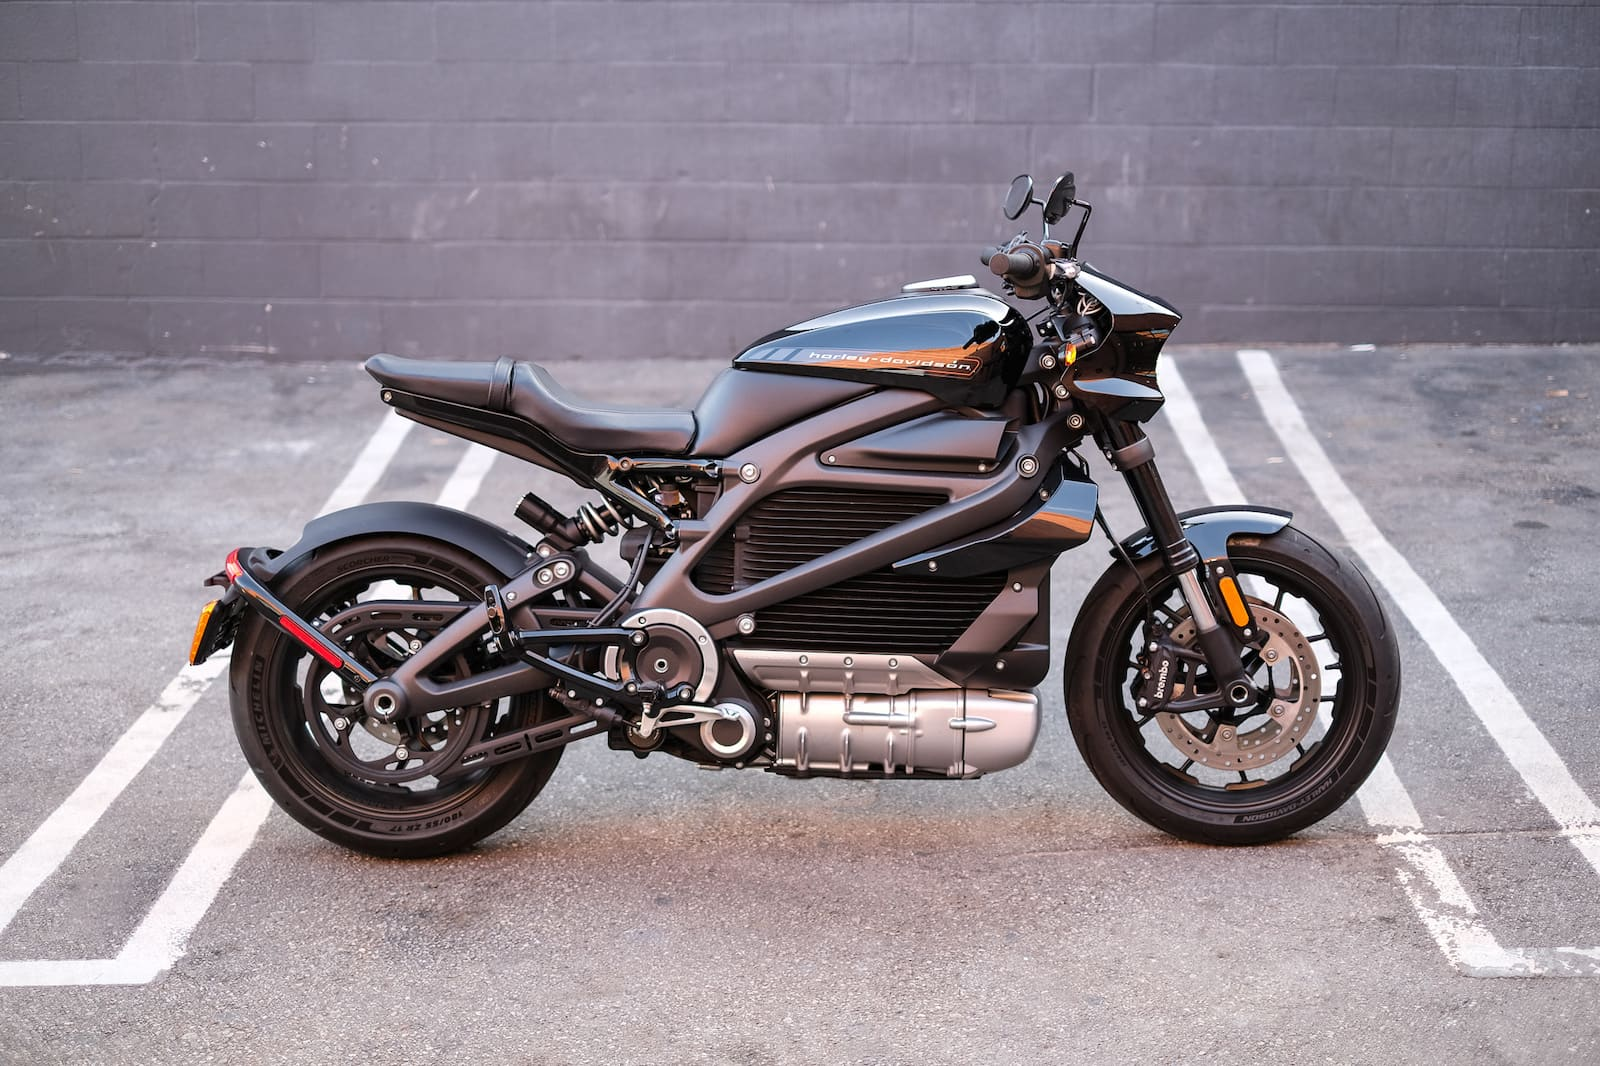 The Harley Davidson LiveWire - Can electric motorcycles have soul?